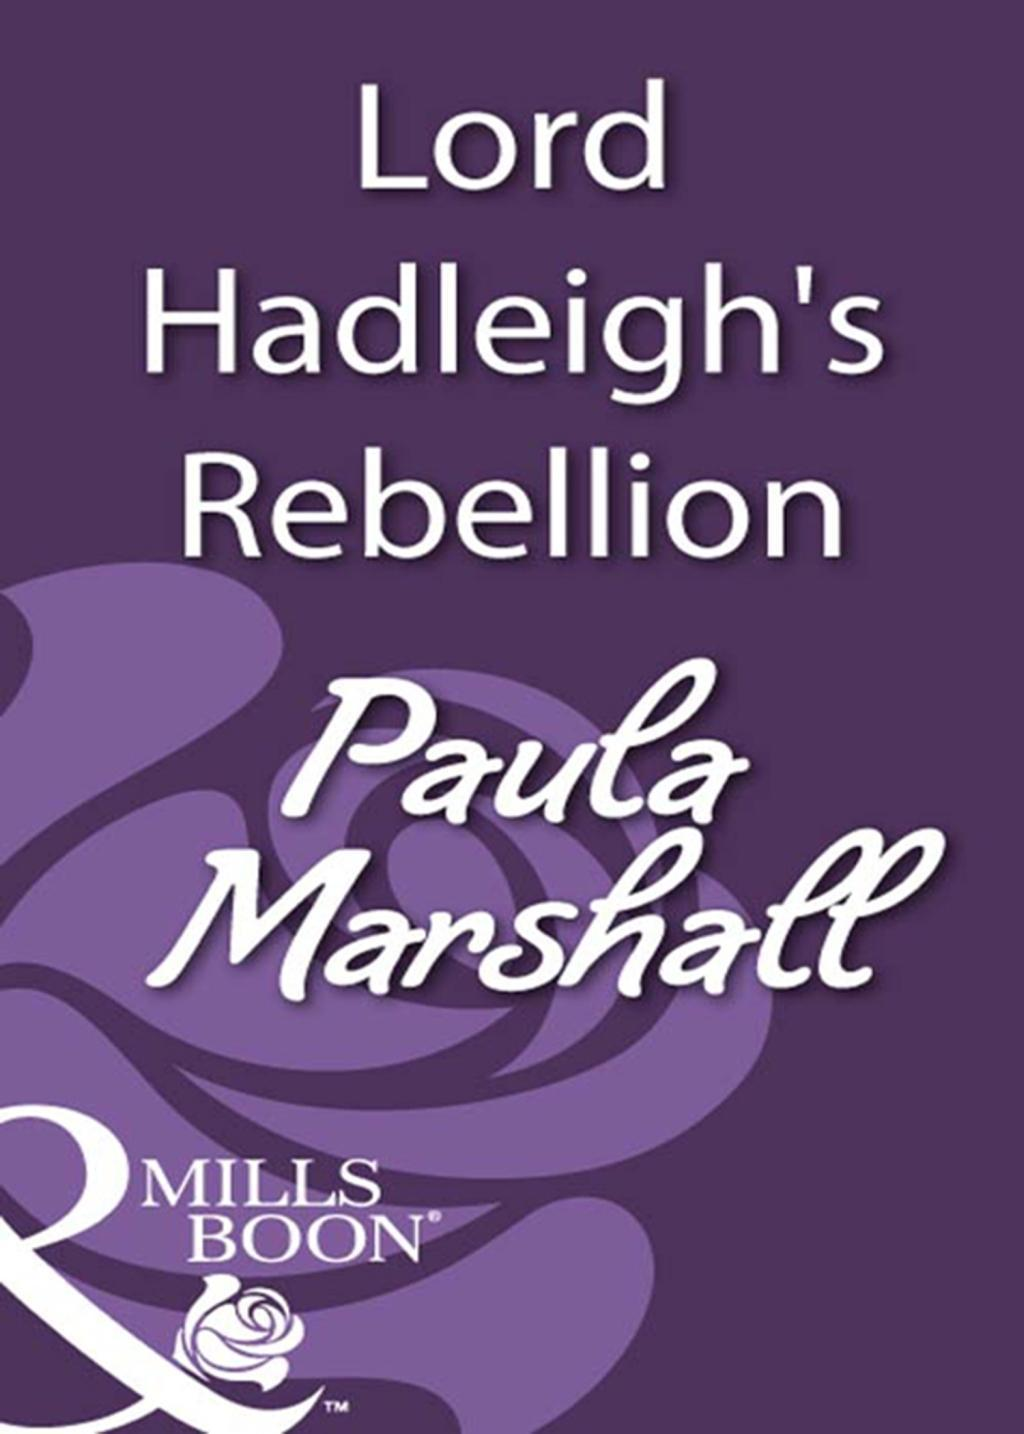 Lord Hadleigh's Rebellion (Mills & Boon Historical)